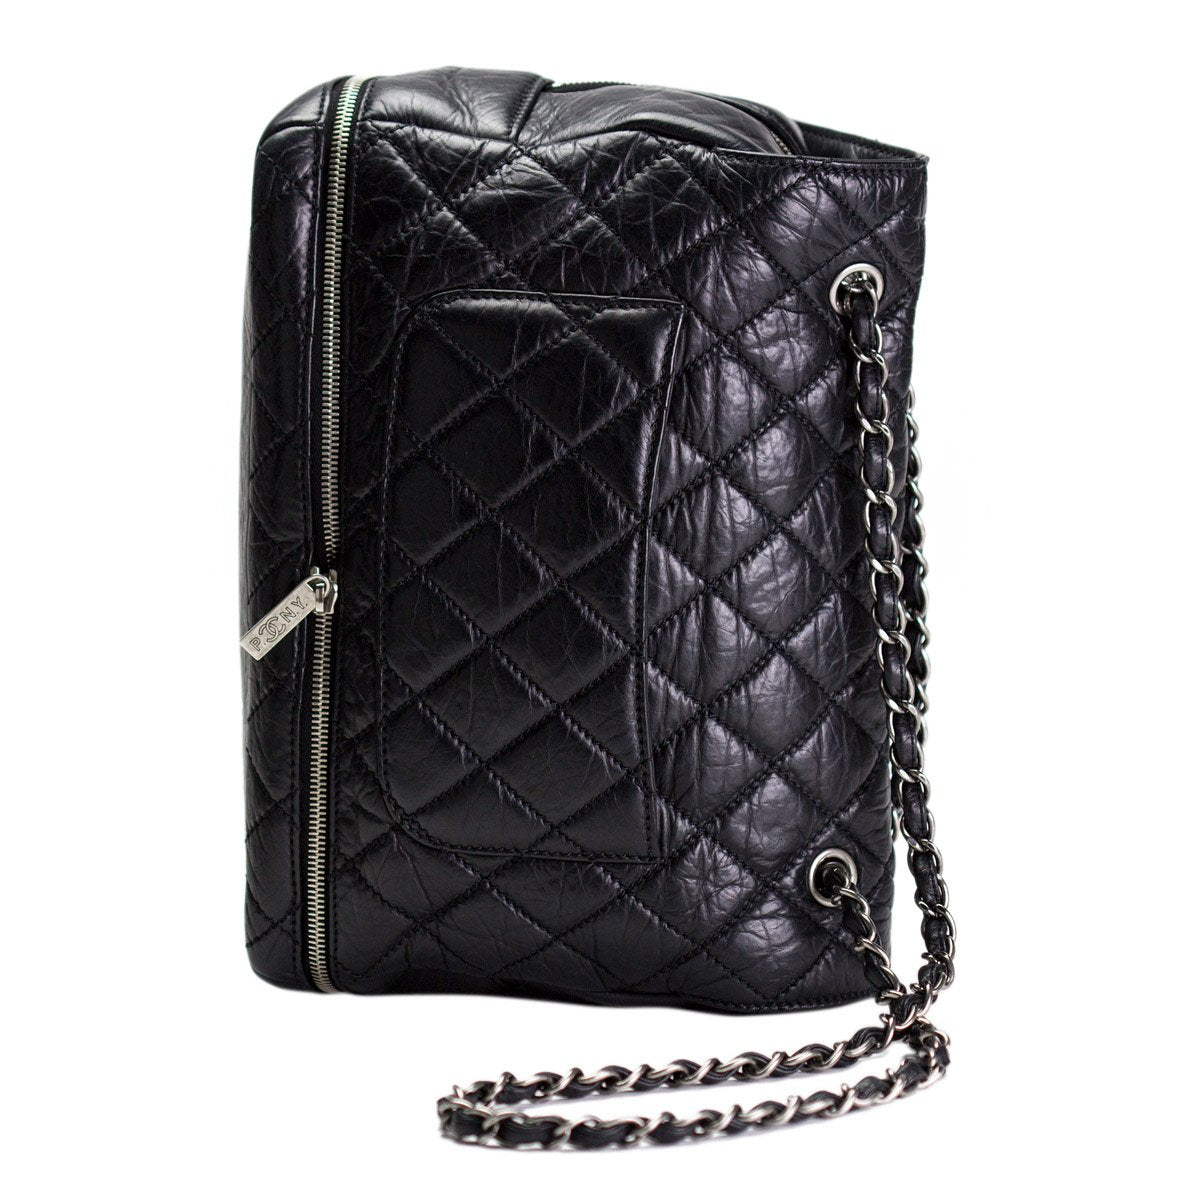 Chanel Expandable Large Calfskin Flap